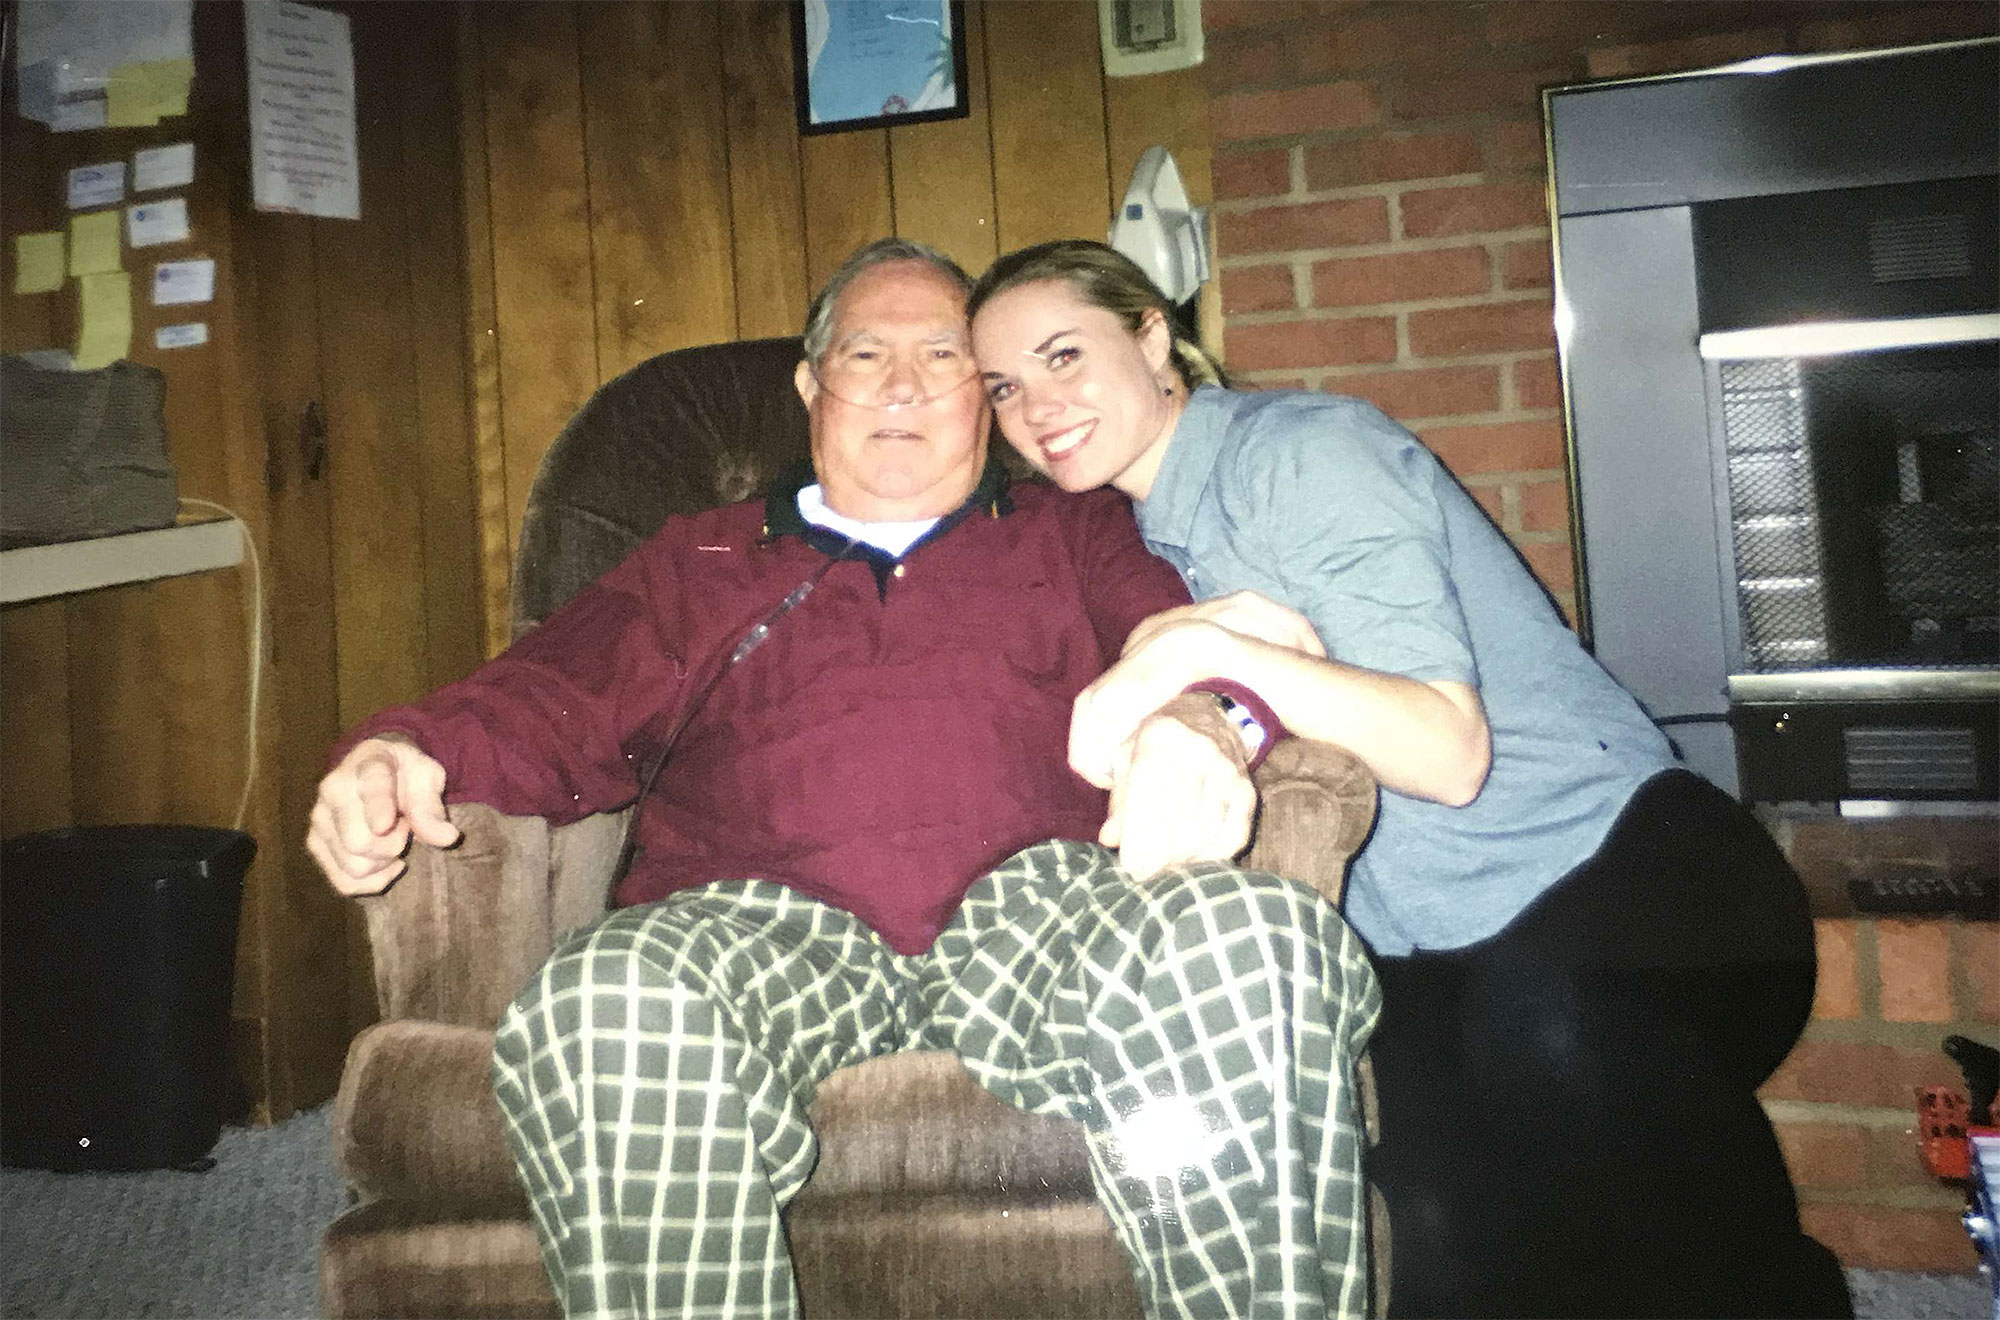 Barnes with her uncle, Bruce Richardson, who was diagnosed with IPF in 2000 and died in 2001. This was taken weeks before his death.